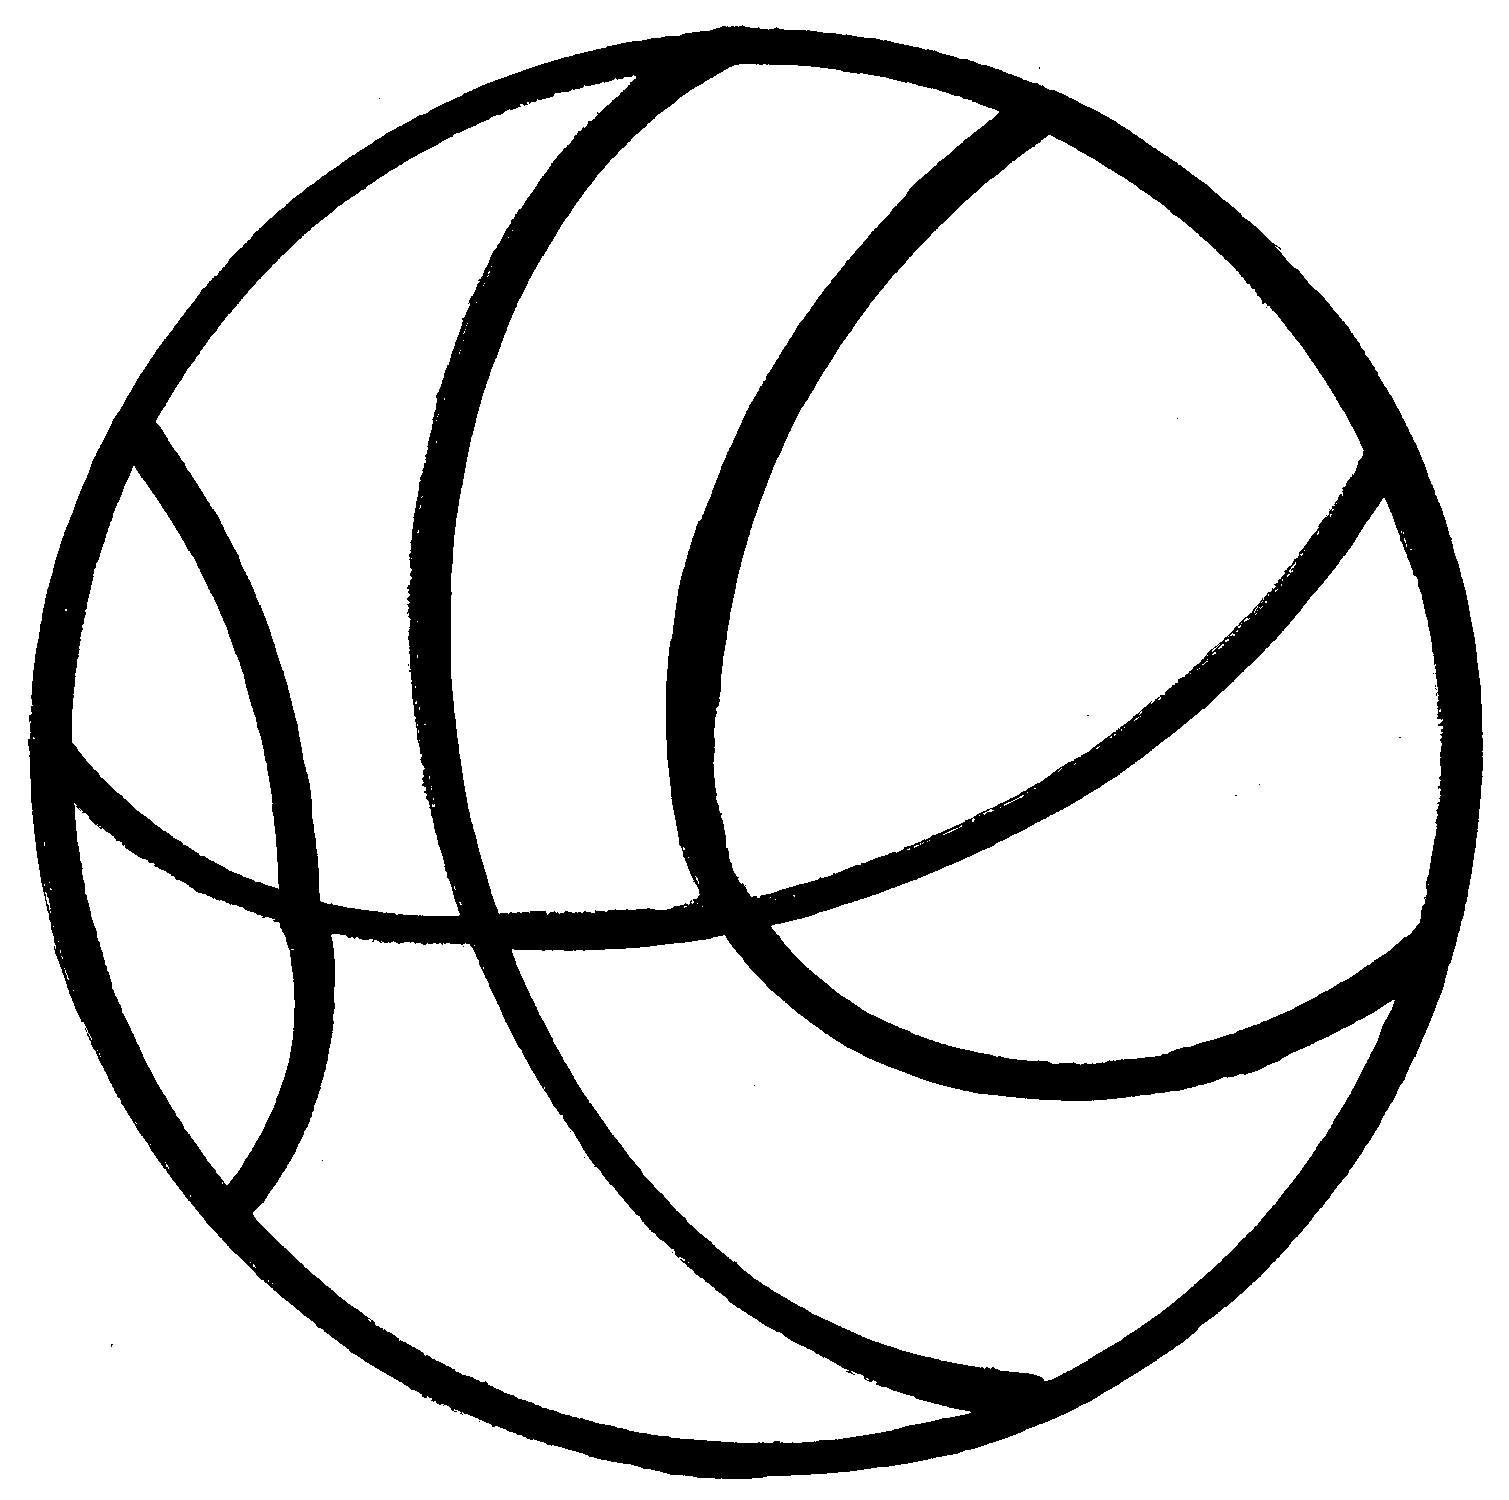 Line clipart basketball Images Engraving 3 pdclipart basketball